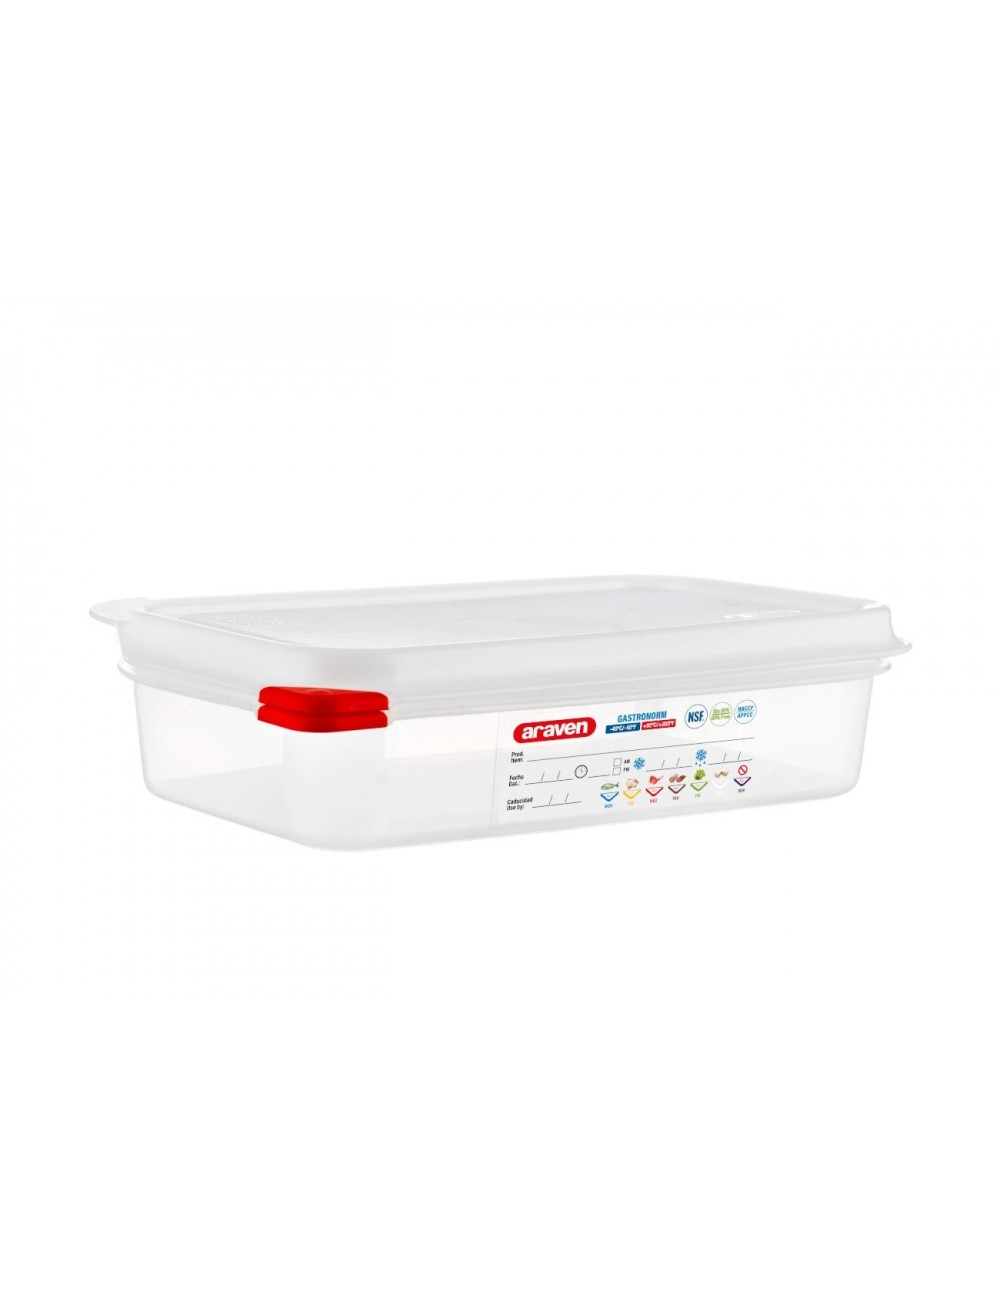 AIRTIGHT CONTAINER - GN 1/4 - Height 65 mm